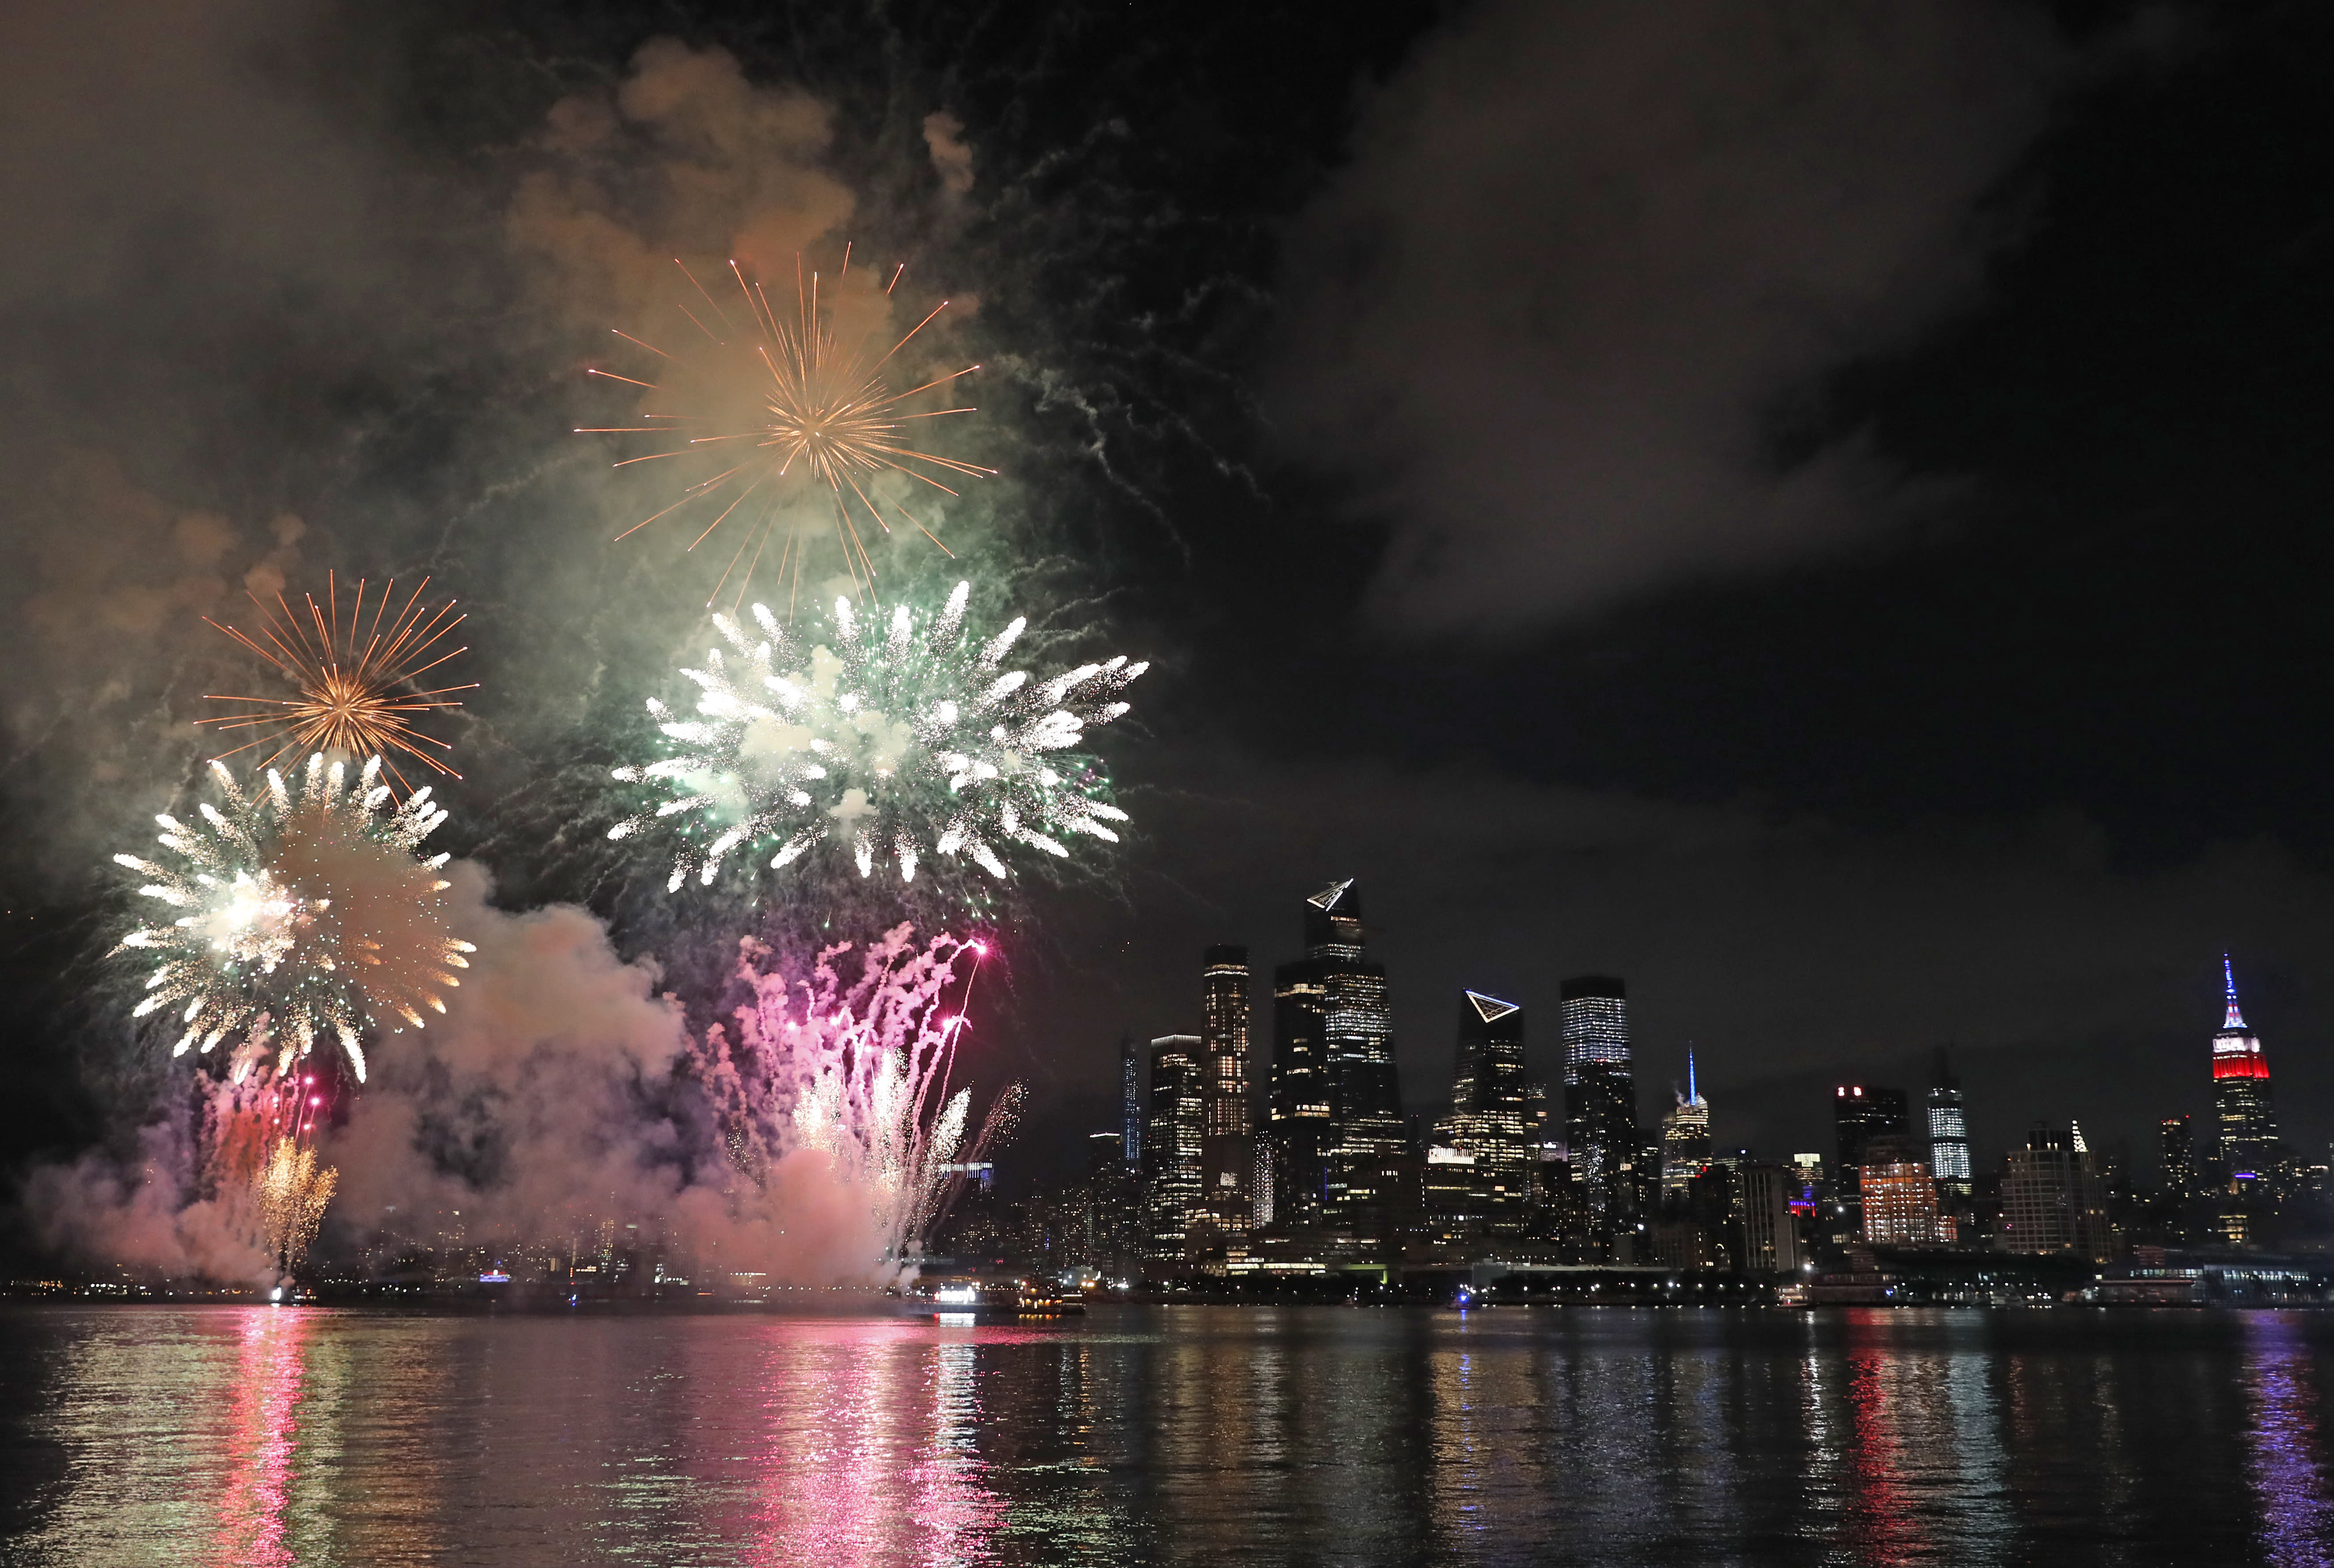 A surprise display of fireworks sponsored by Macy's explode over the Hudson Yards area of Manhattan as seen from a pier in Hoboken, N.J., late Tuesday, June 30, 2020. The fireworks were not announced until an hour or so before to avoid attracting large crowds during the coronavirus pandemic. (AP Photo/Kathy Willens)